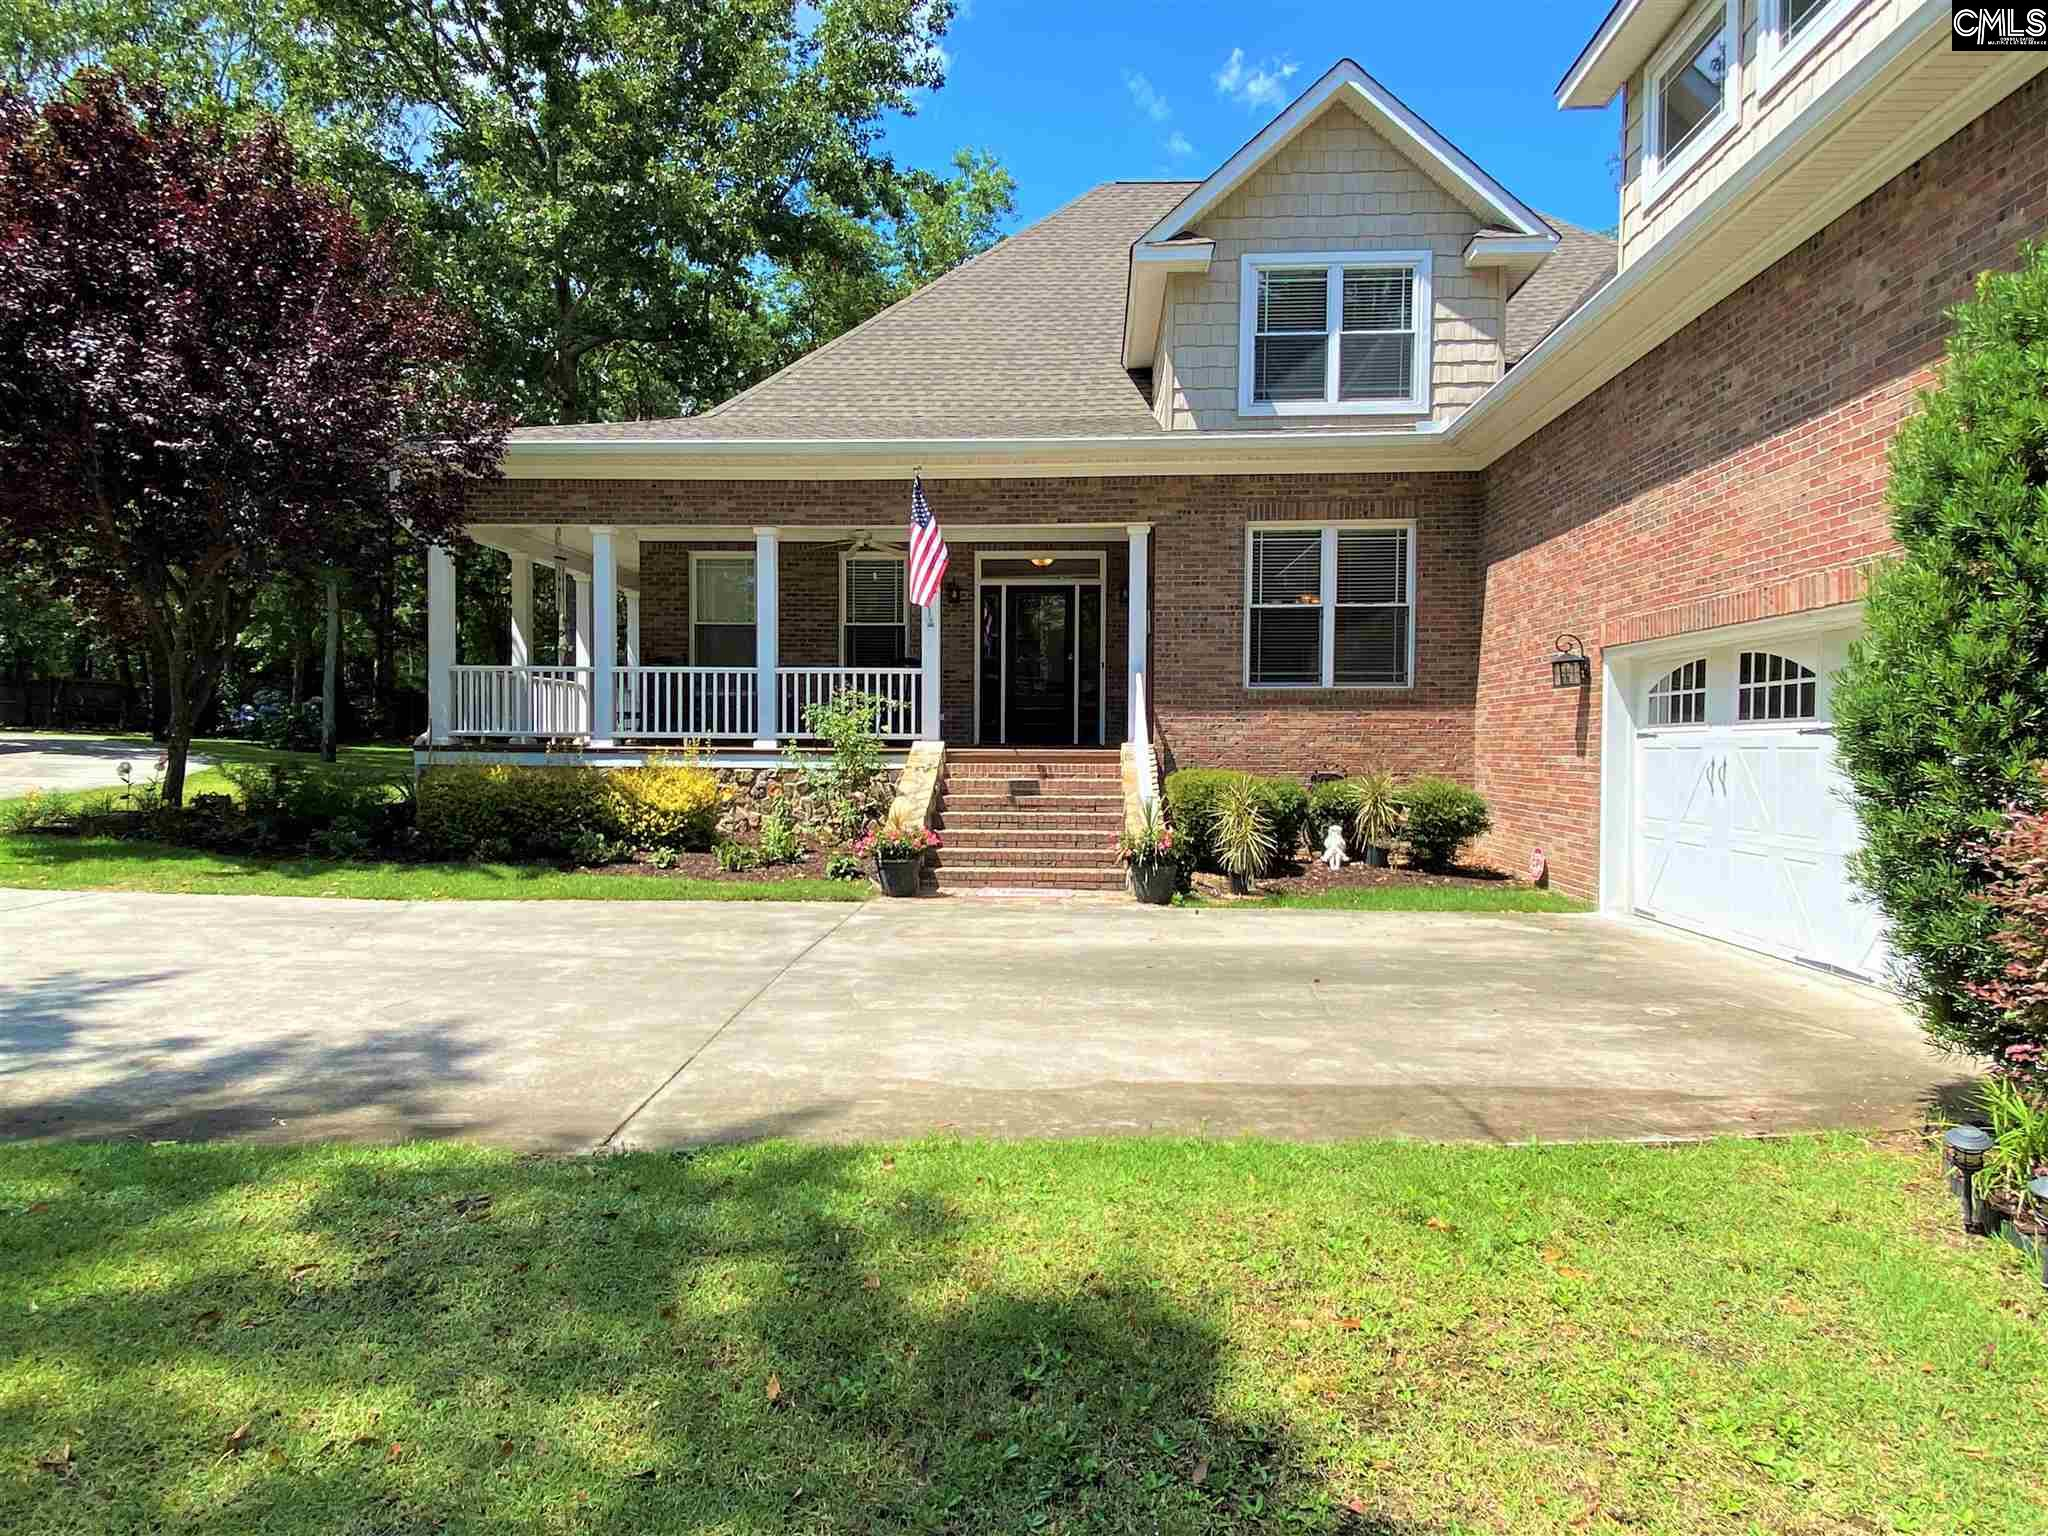 233 Vista Springs Lexington, SC 29072